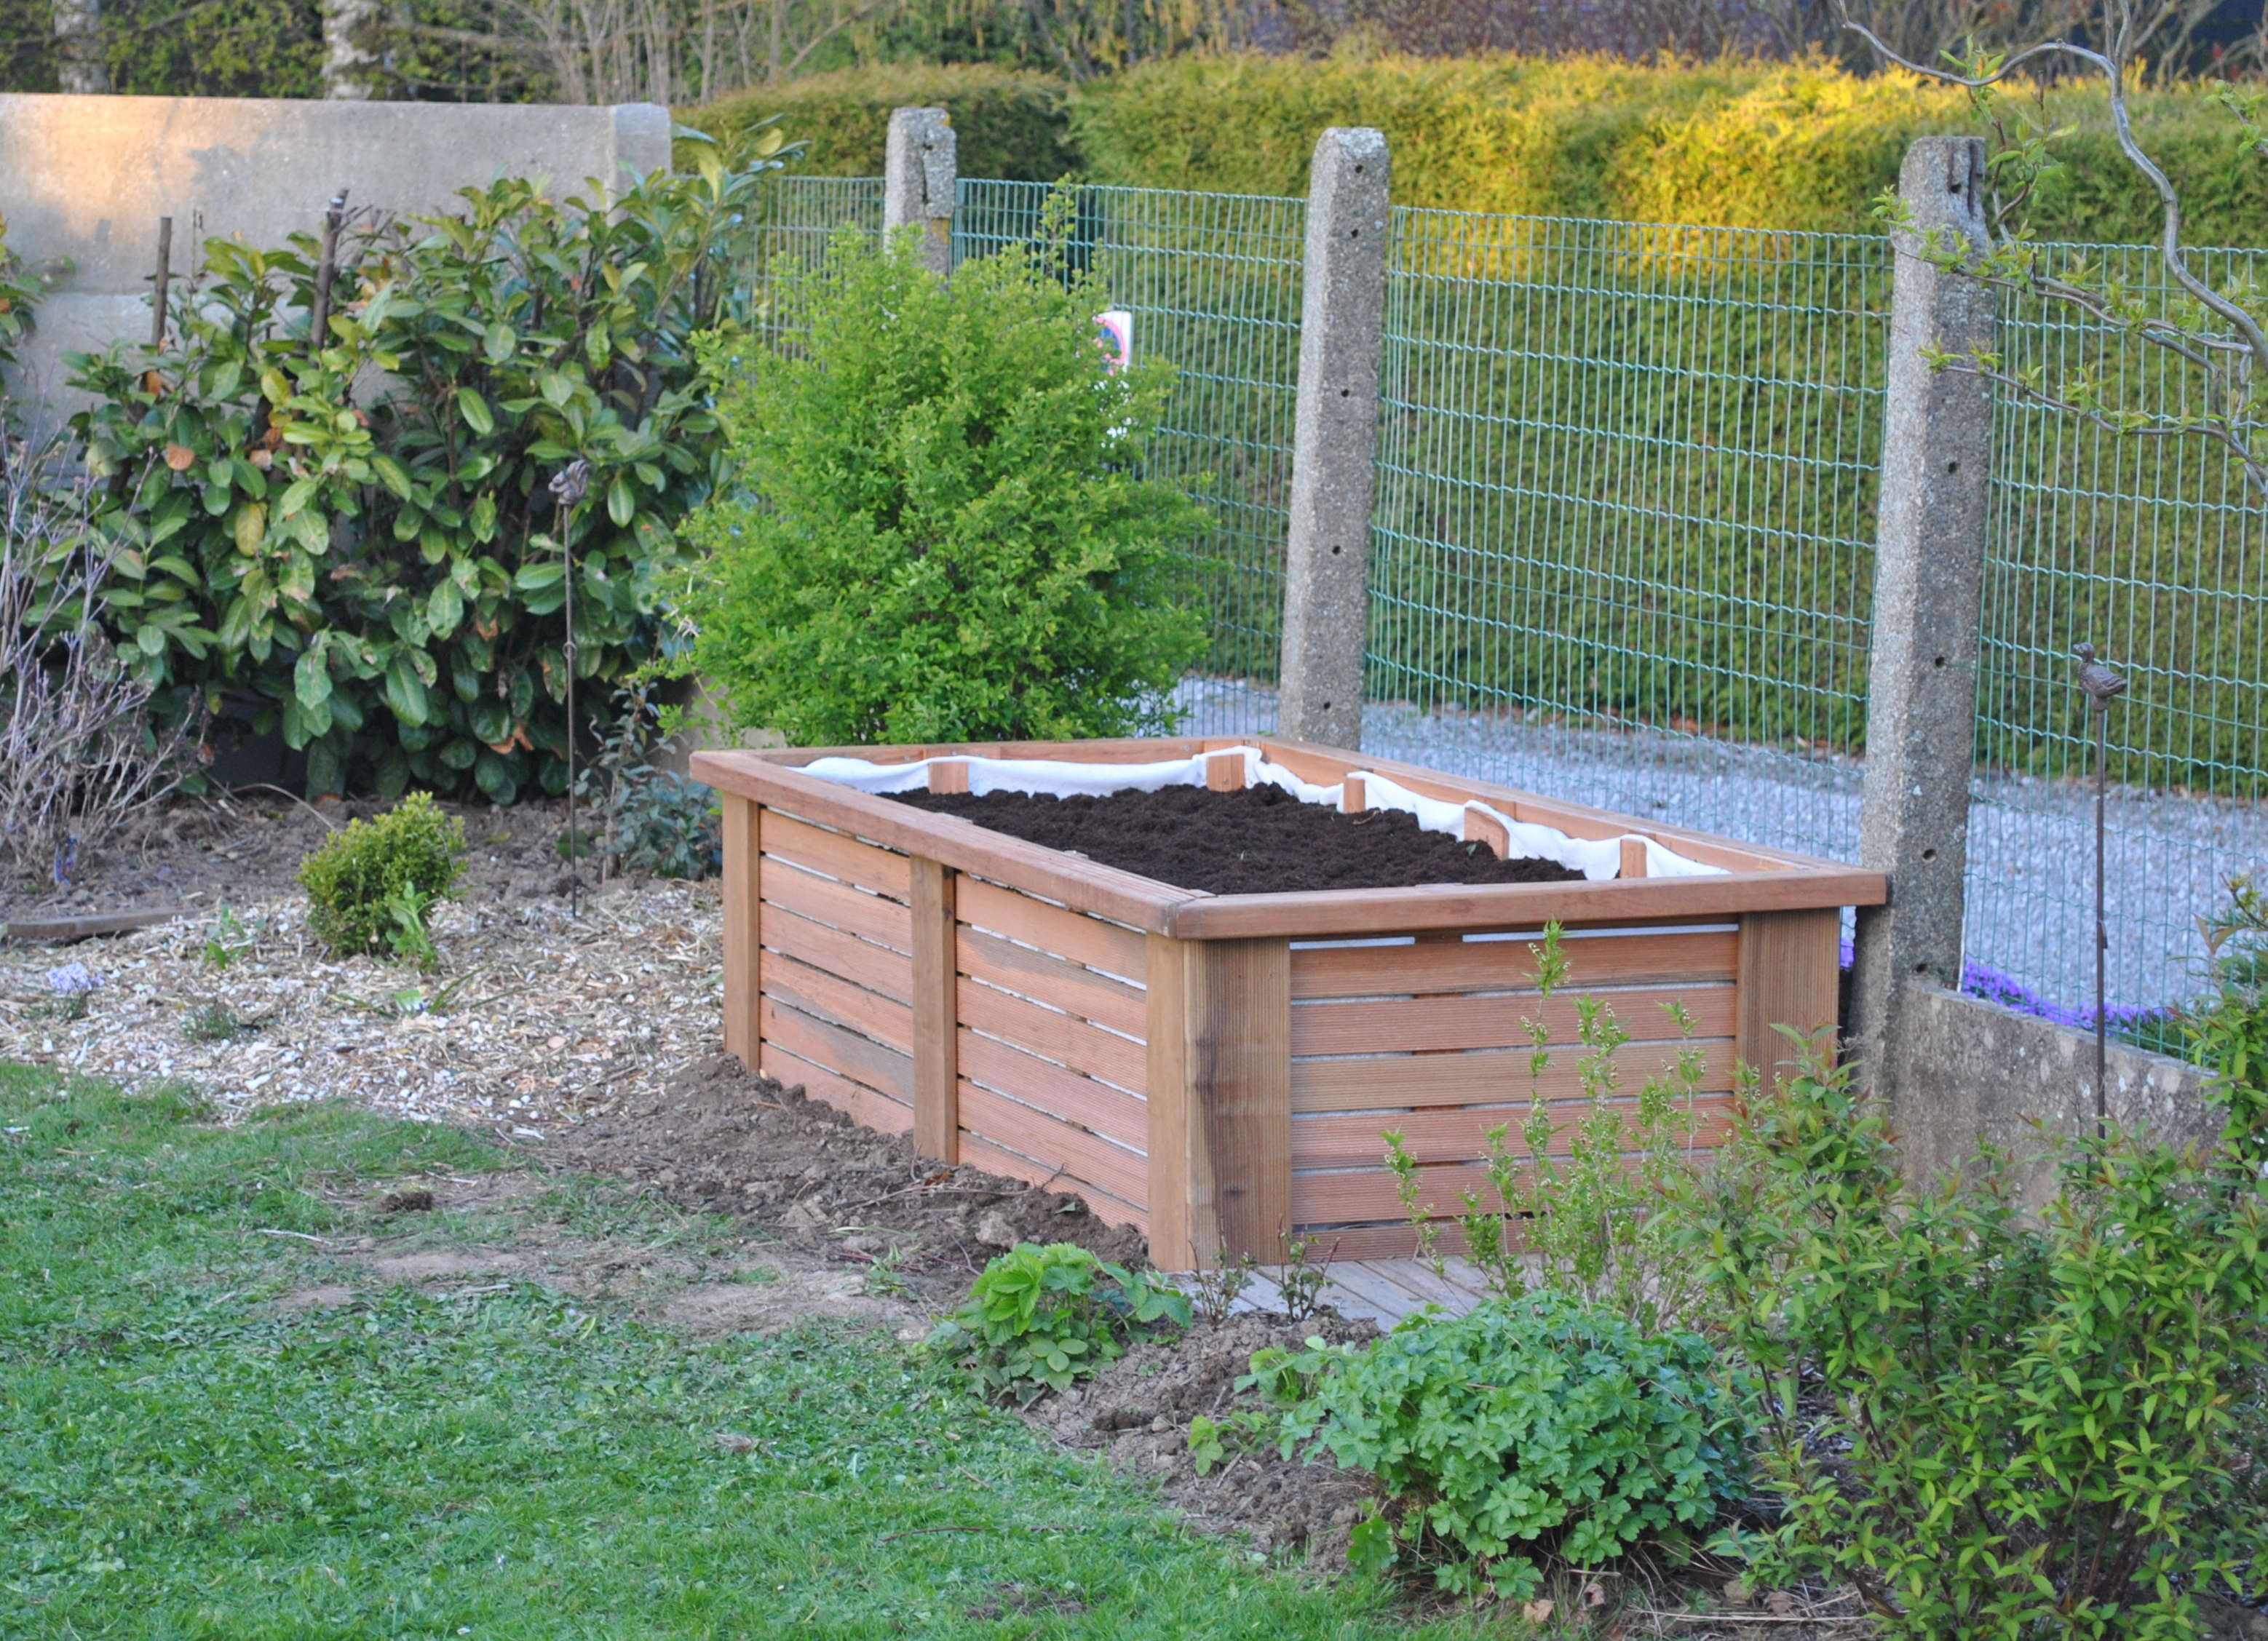 plan du potager les chroniques de mon jardin. Black Bedroom Furniture Sets. Home Design Ideas